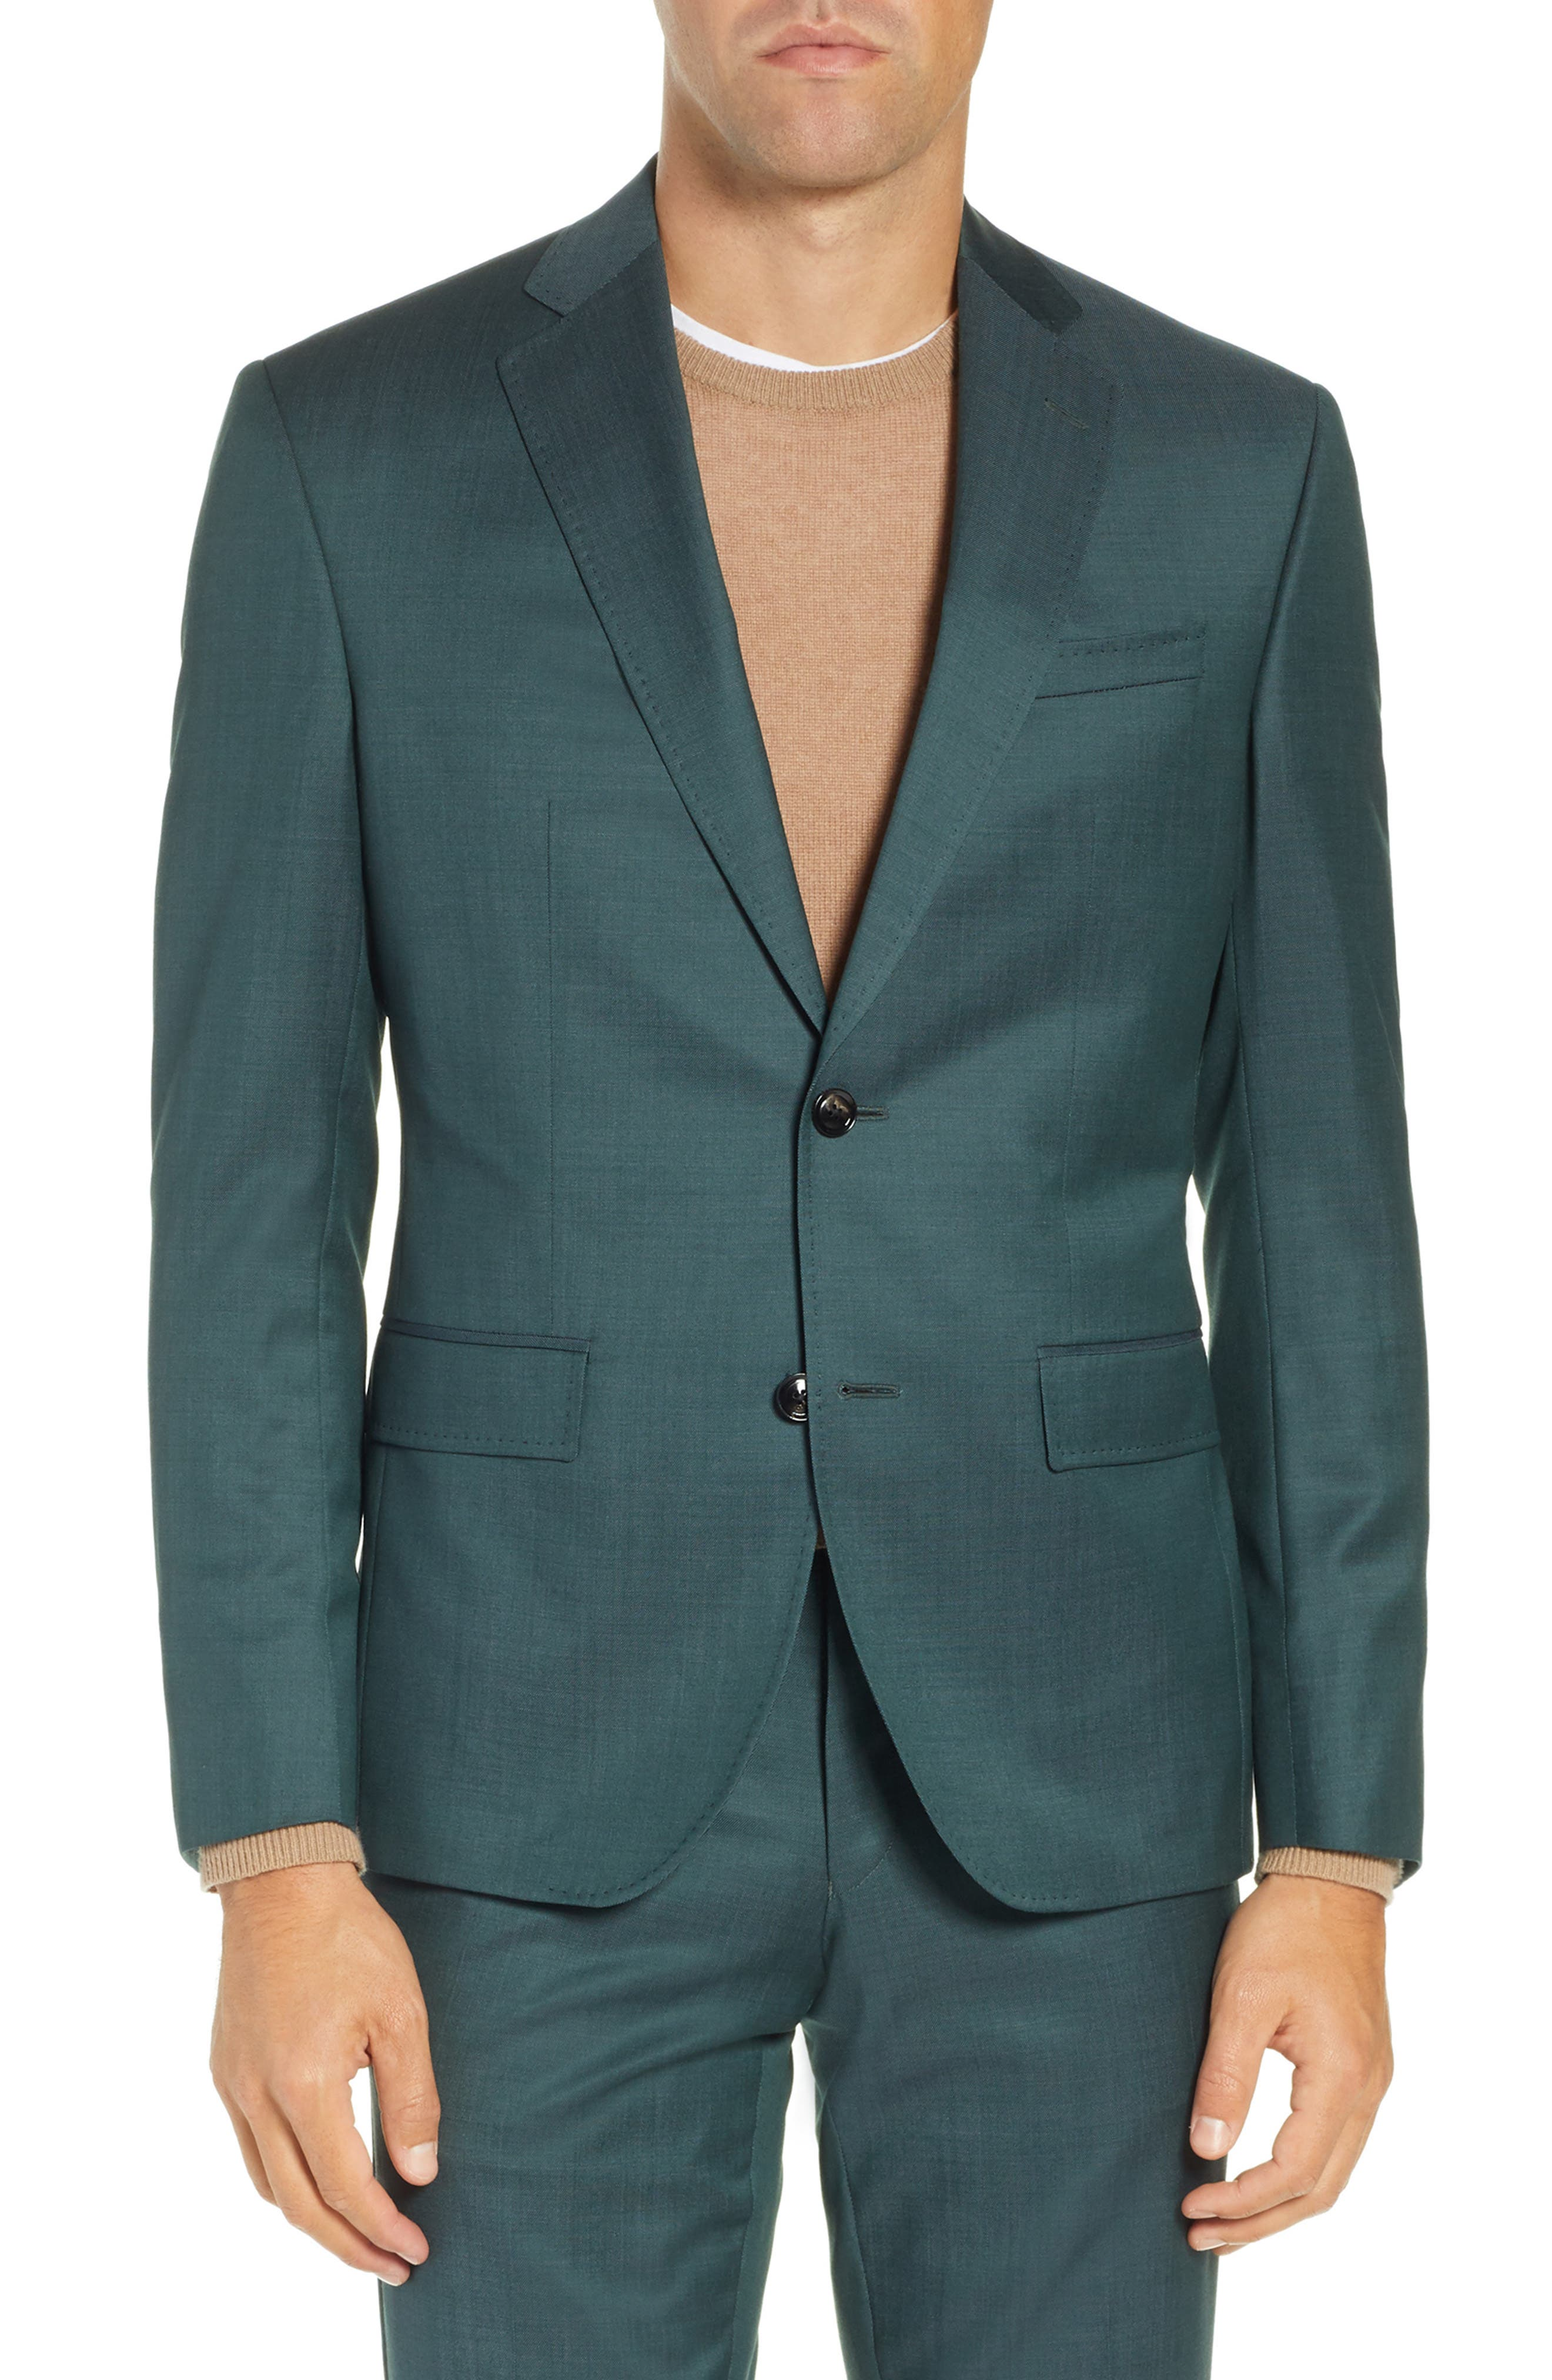 TED BAKER LONDON, Roger Slim Fit Solid Wool Suit, Alternate thumbnail 5, color, GREEN